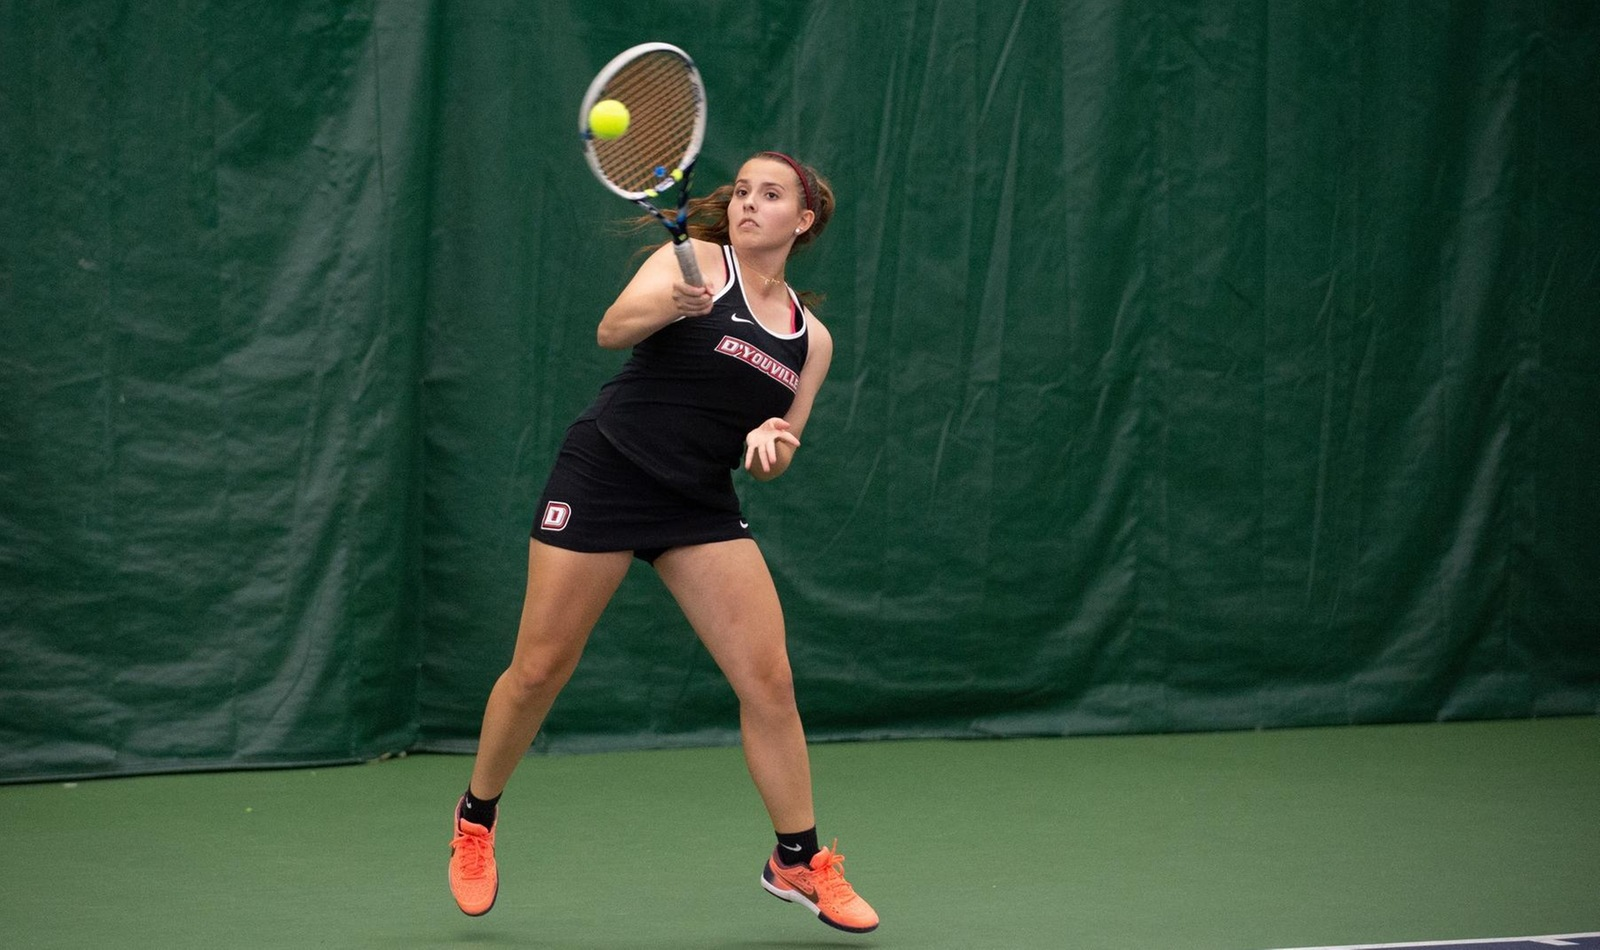 Women's Tennis Win's First Match of Season over Behrend